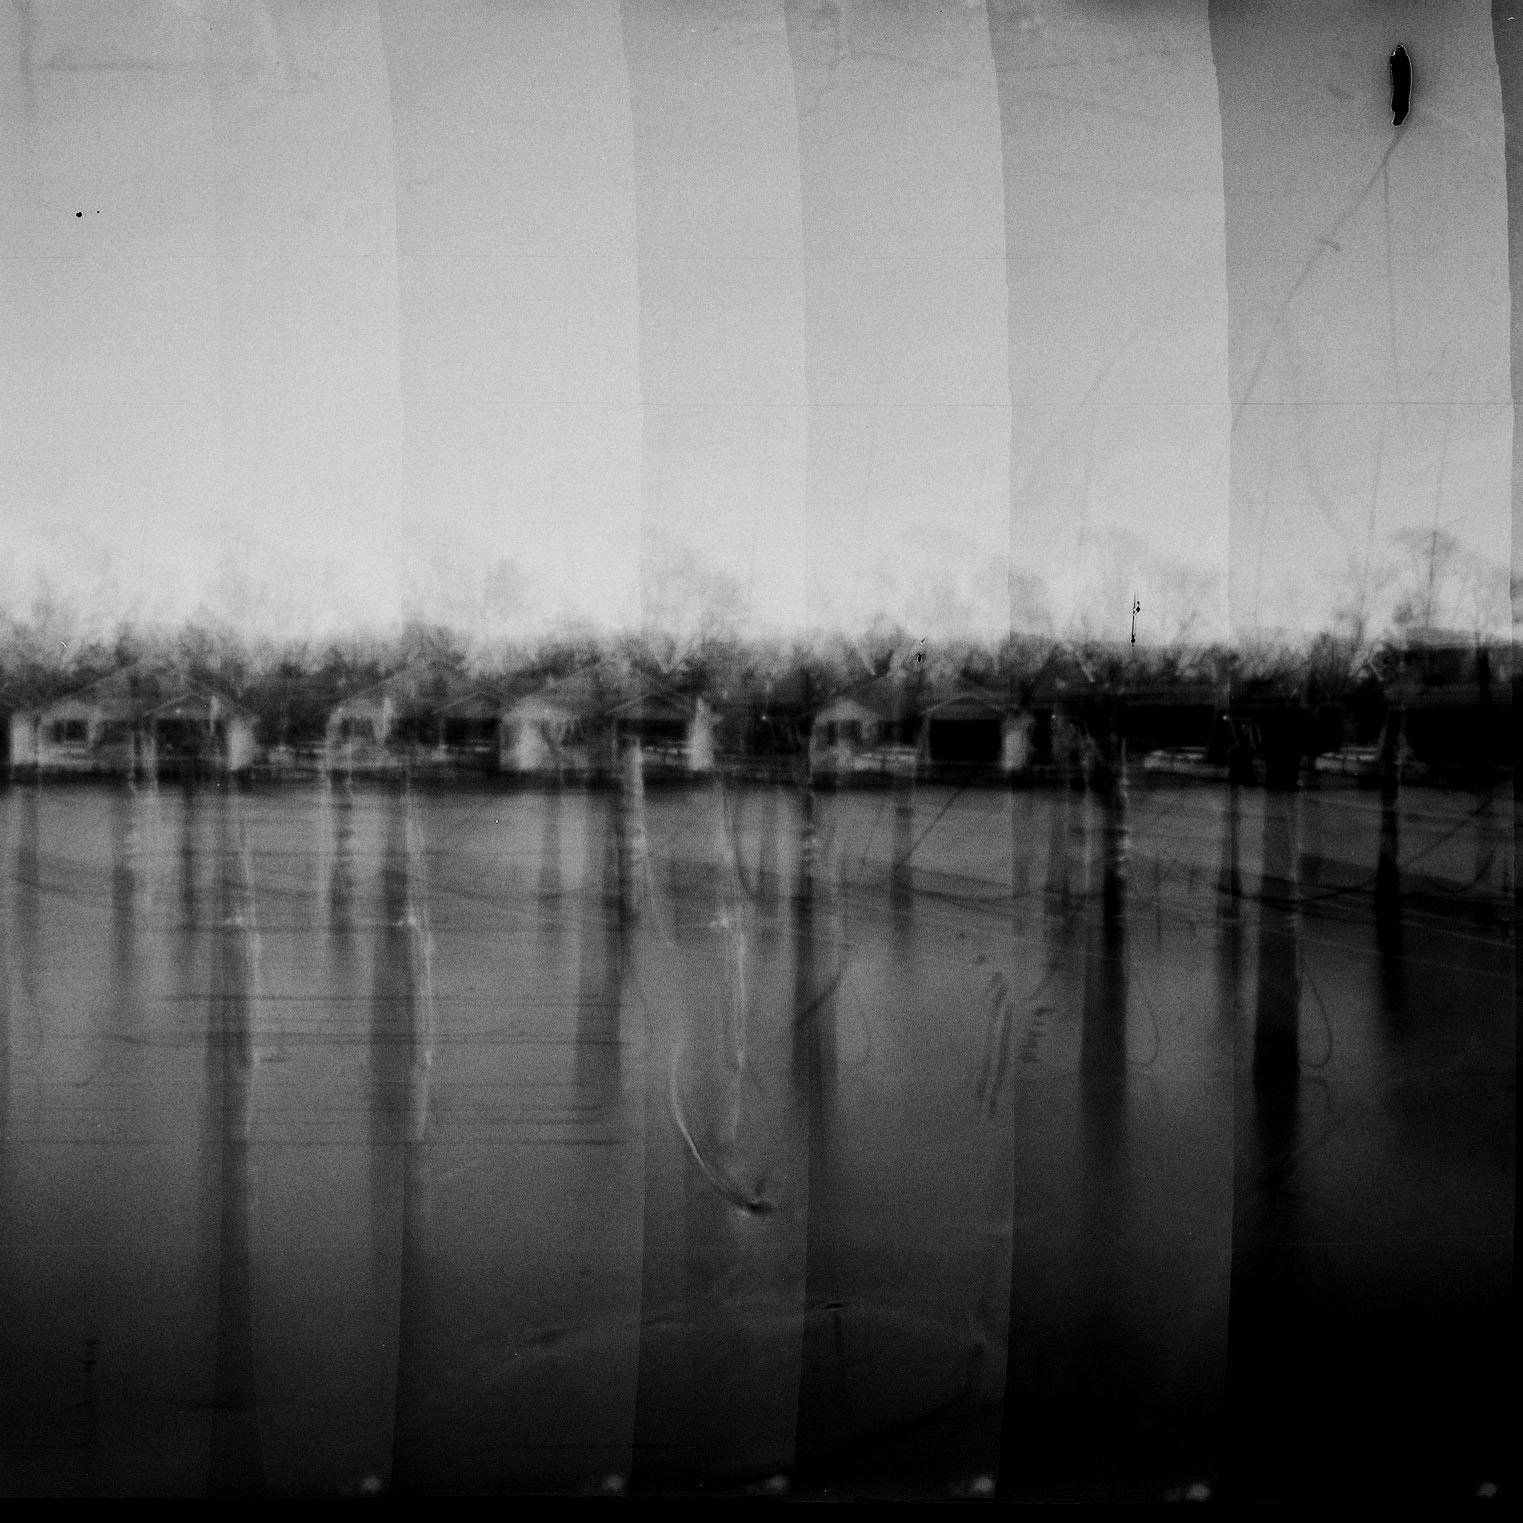 Photograph ruined film 2 by Evan Lavine on 500px